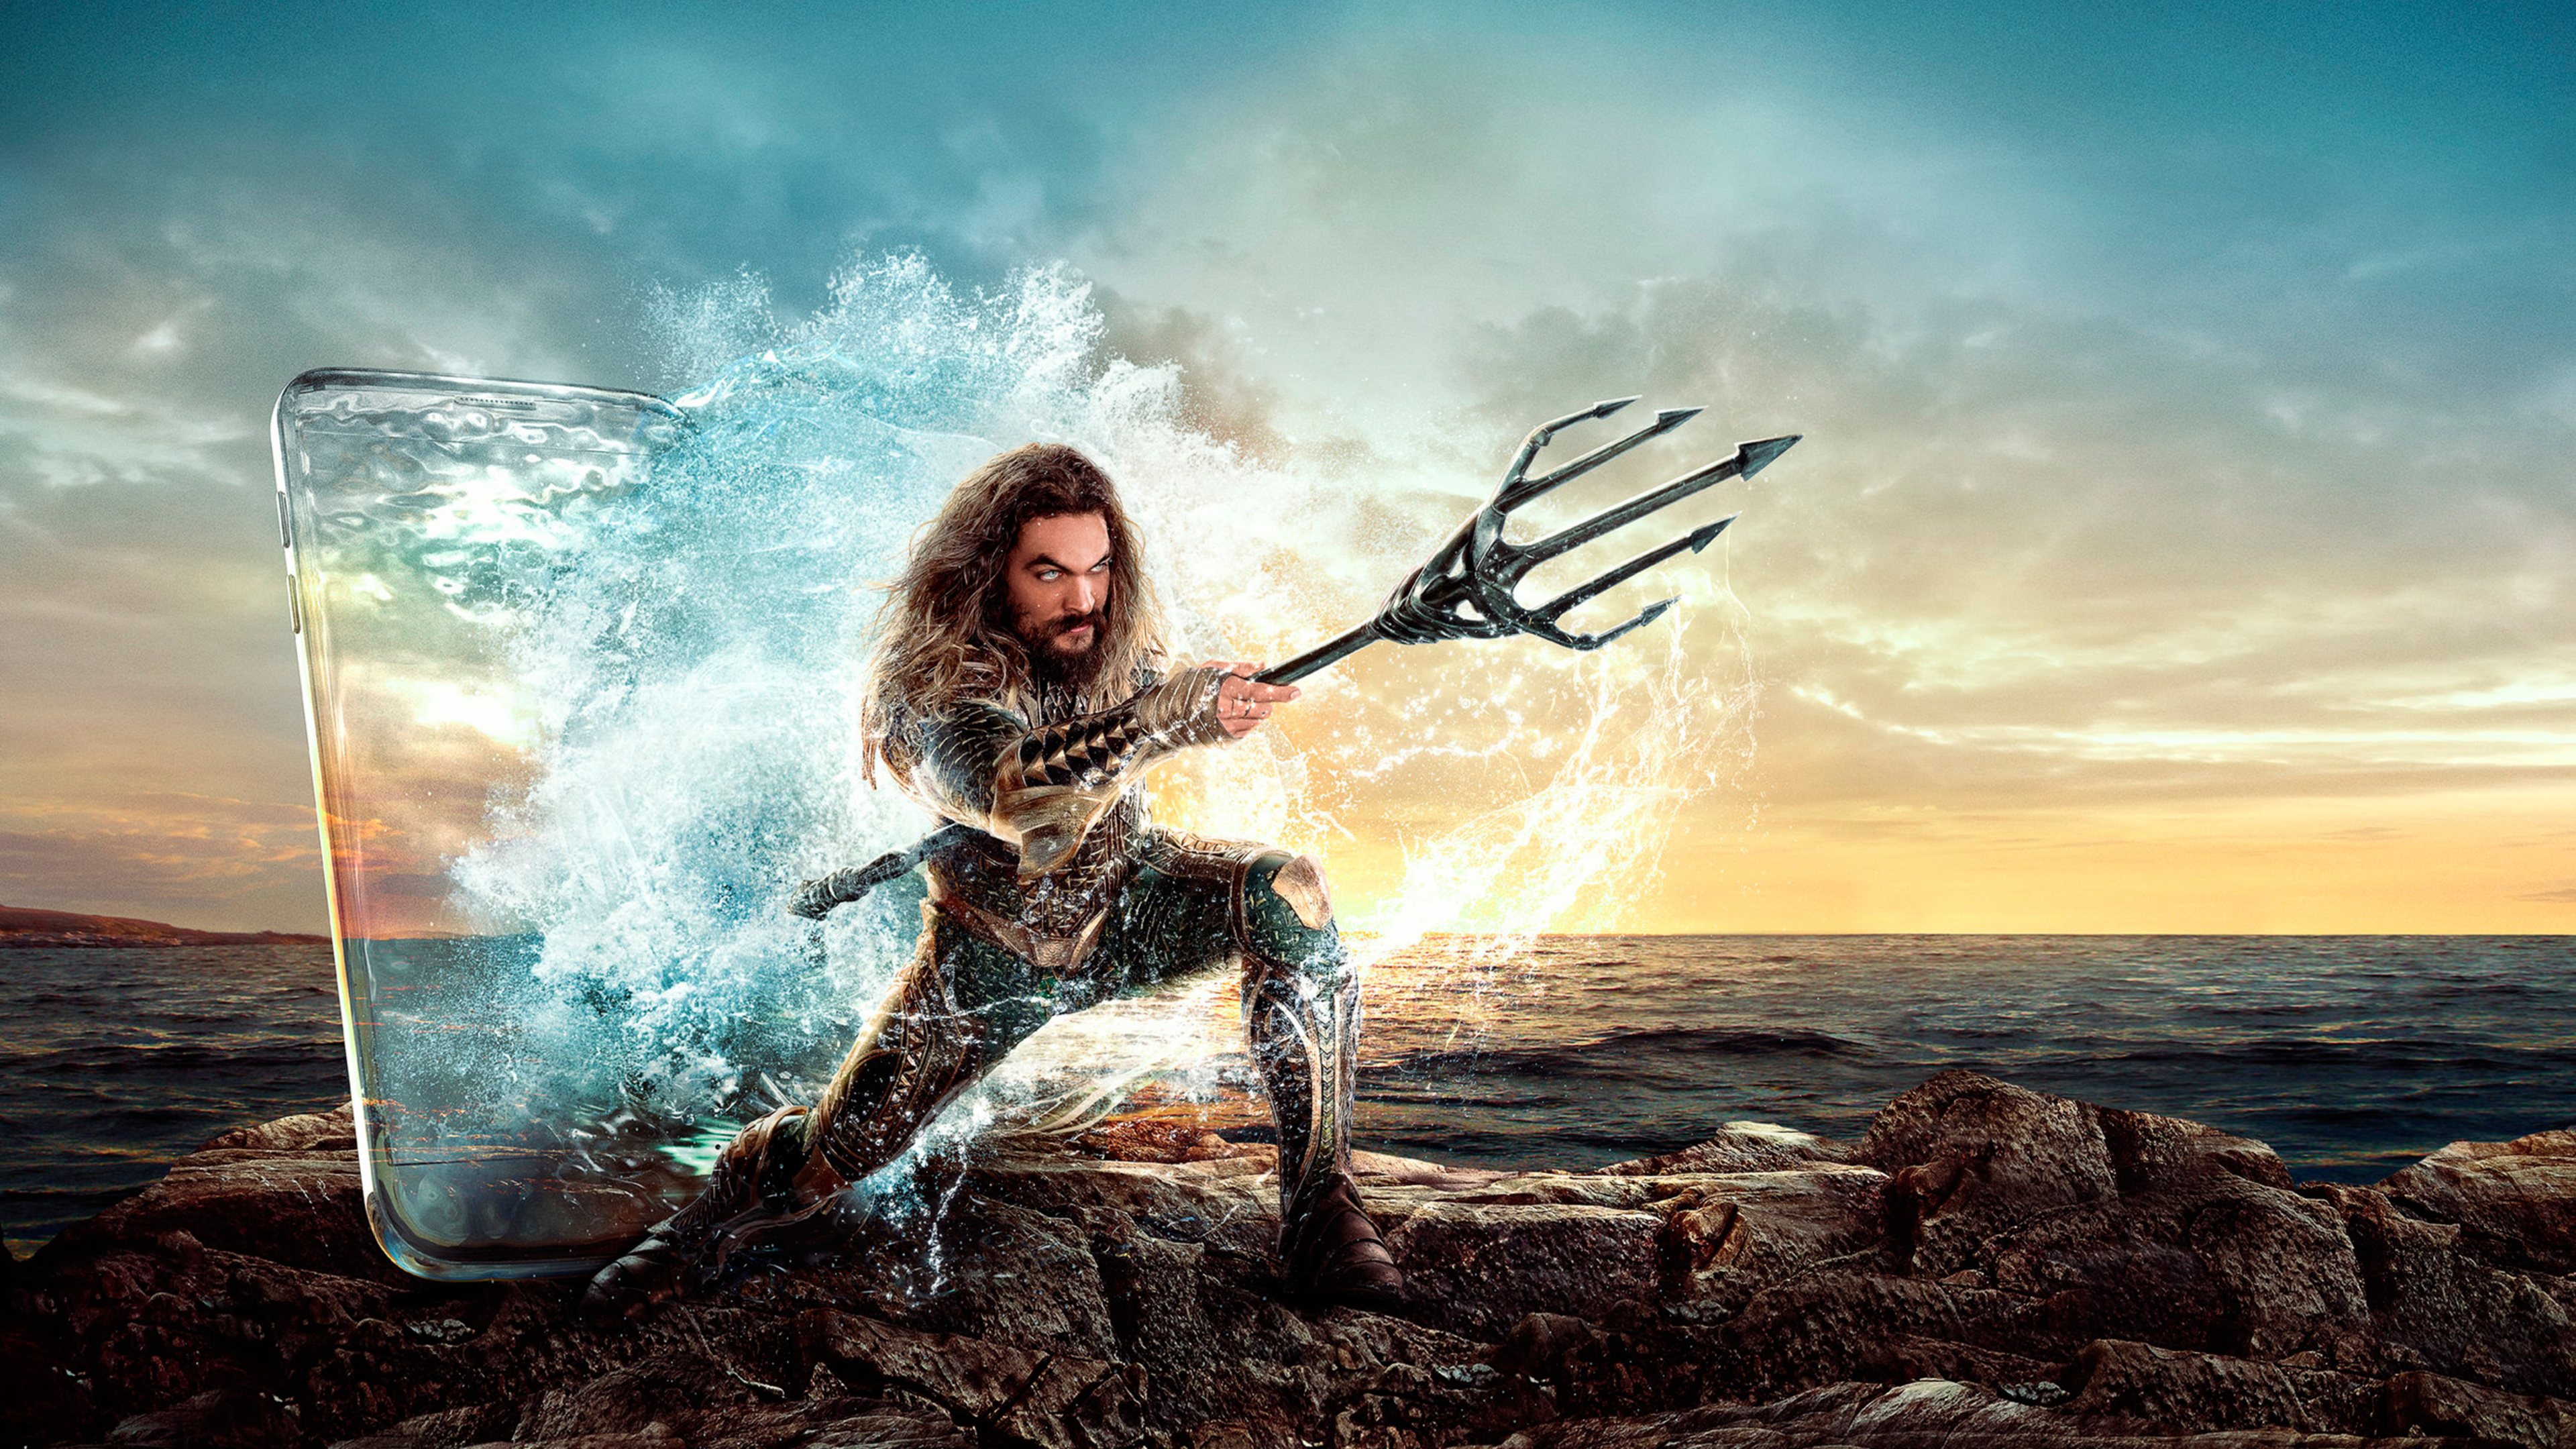 aquaman 2018 ql 3840x2160 - Aquaman movie 4k - aquaman movie wallpapers 4k, aquaman hd wallpapers, aquaman 4k wallpapers, Aquaman 2018 wallpapers